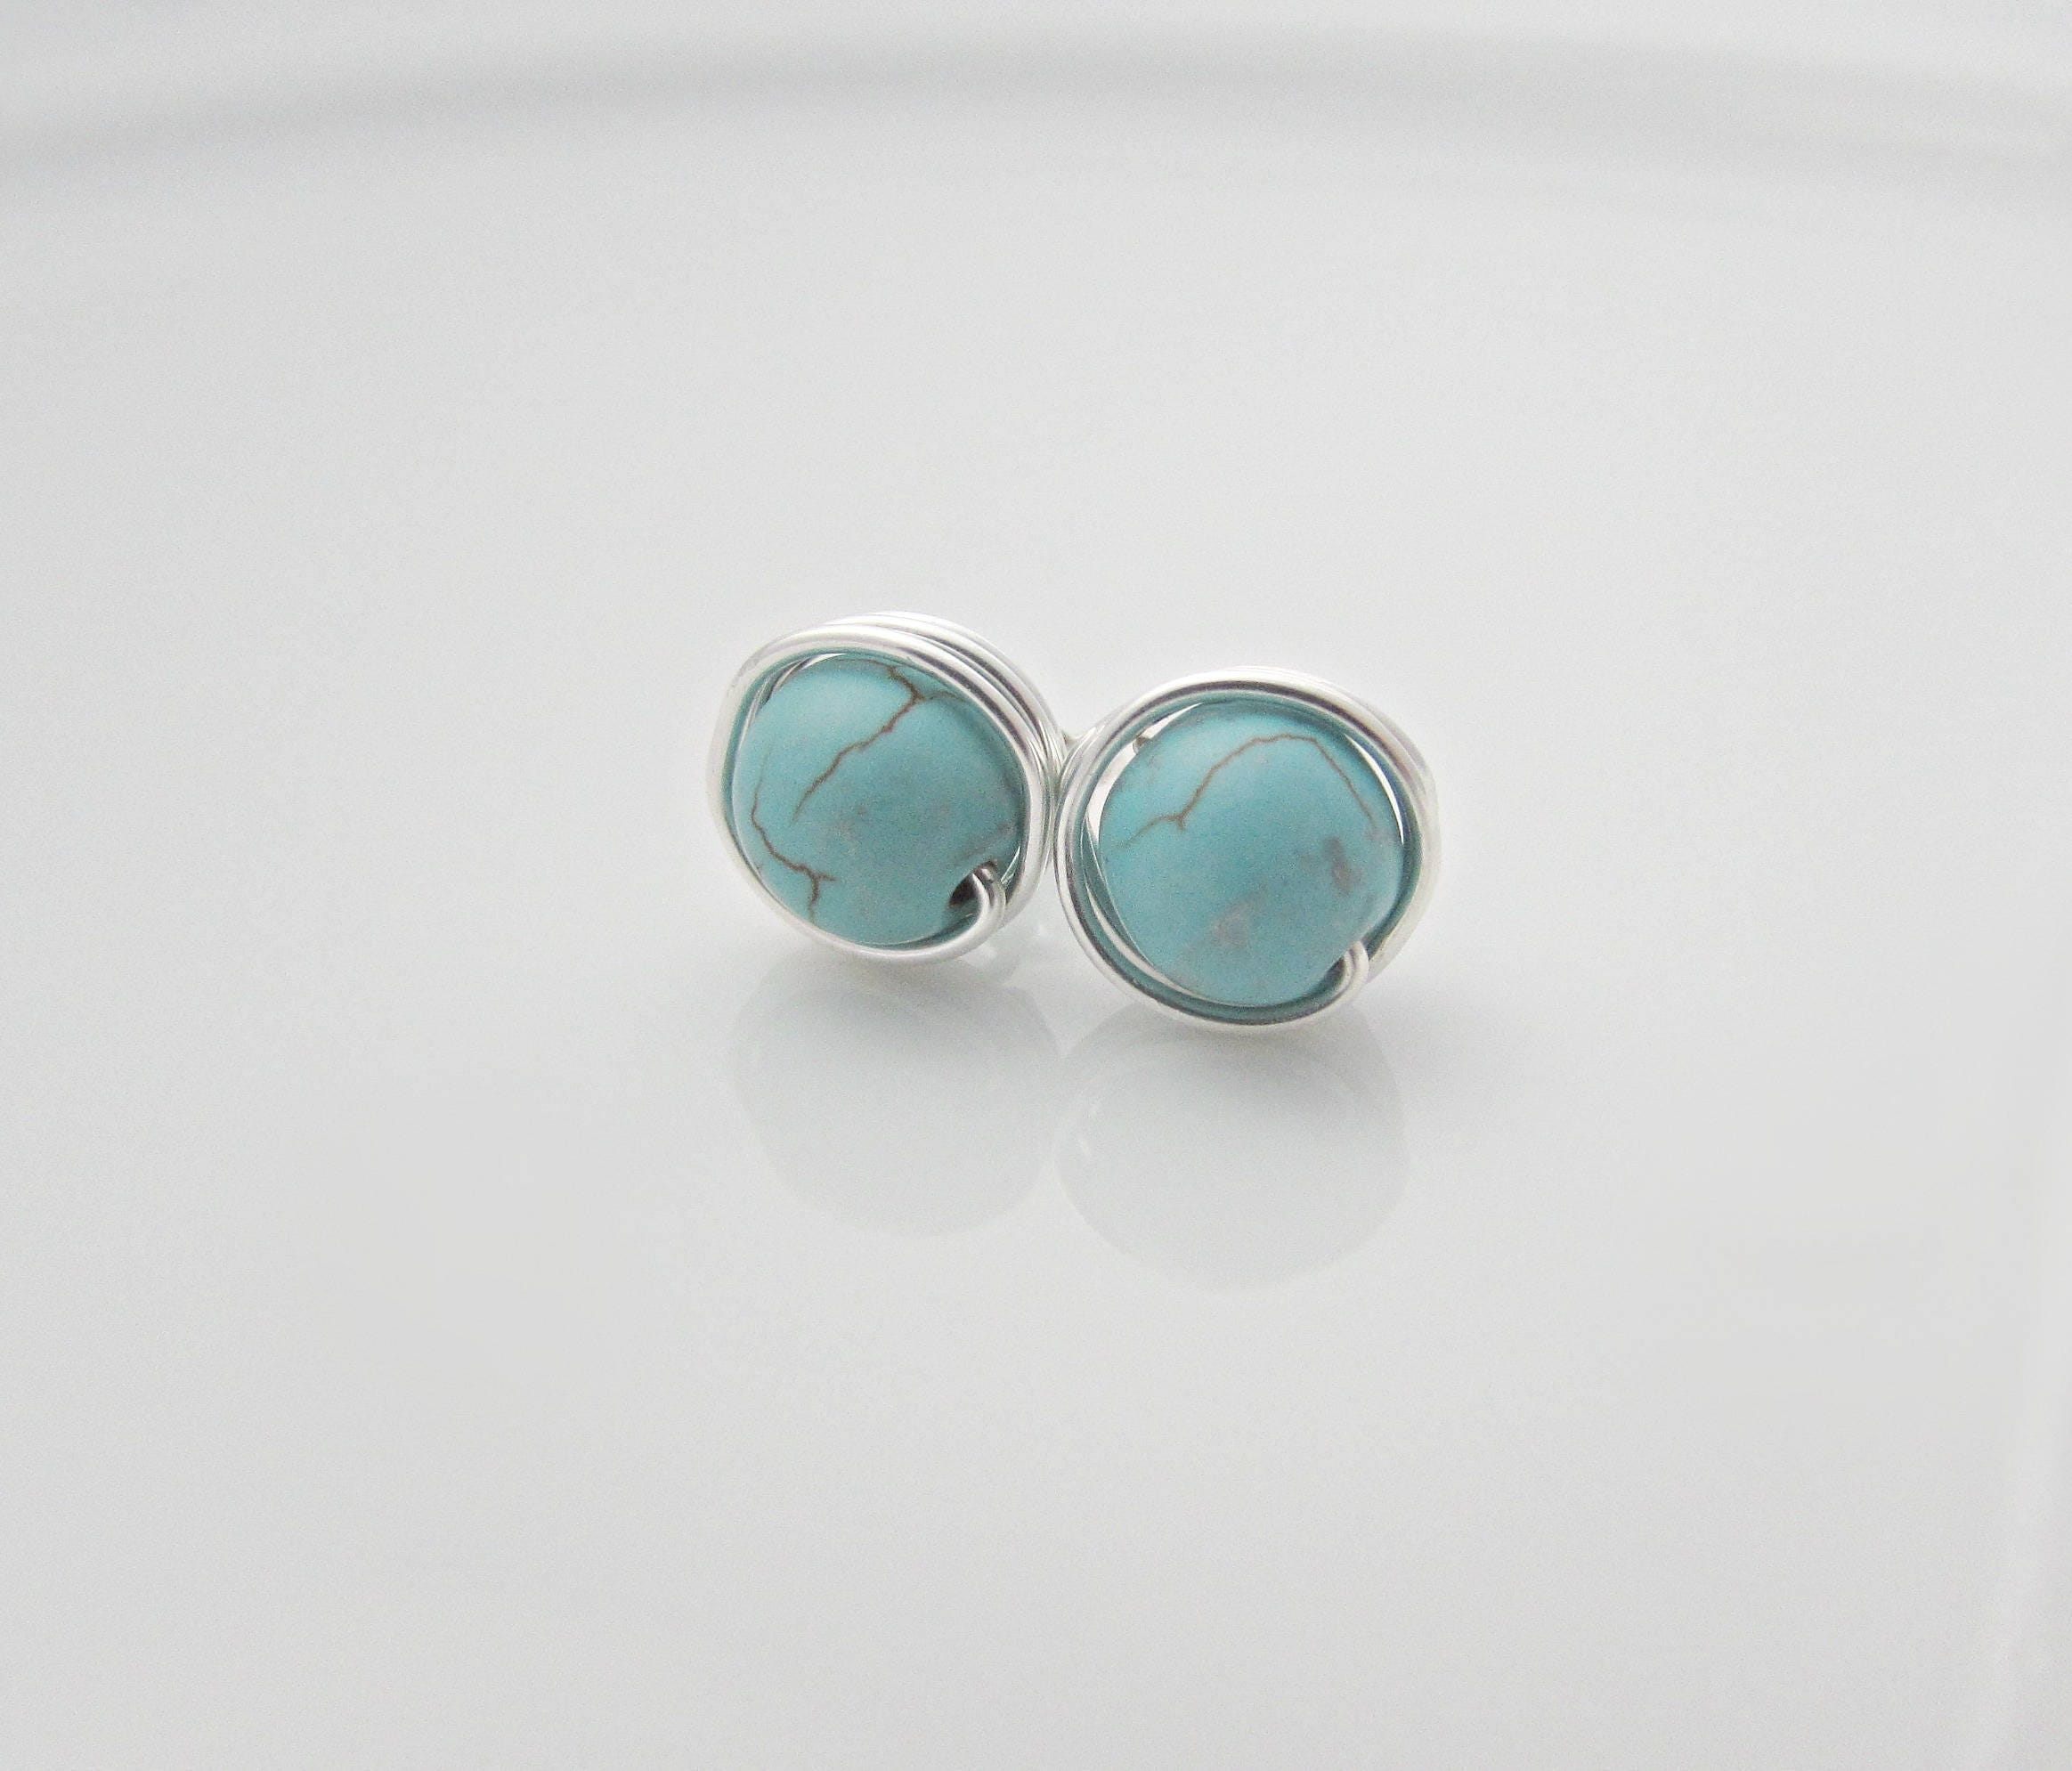 bling arrival earrings crown rhodium jewelry oval p turquoise reconstituted new plated stud